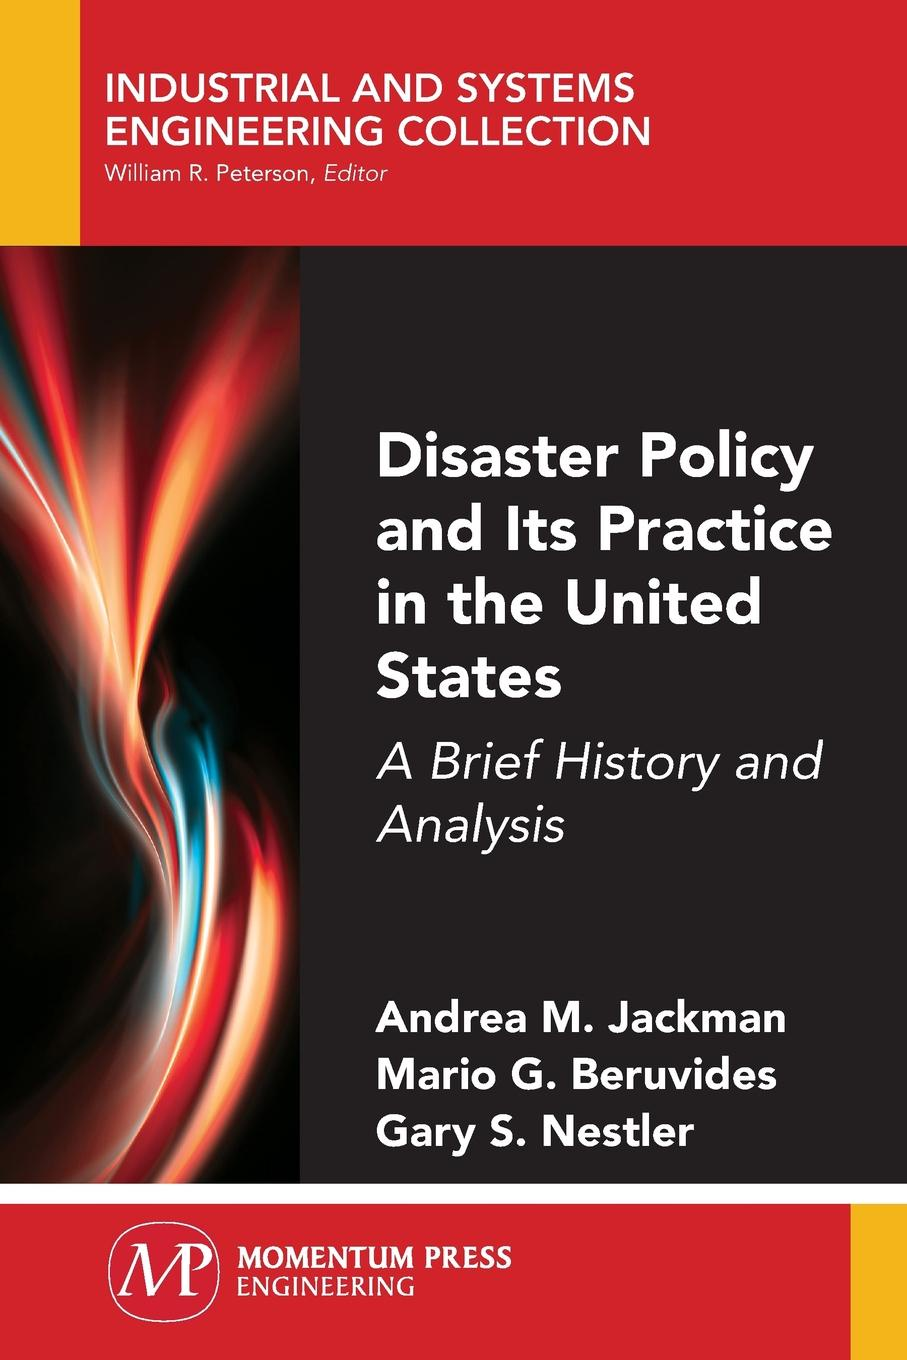 Andrea M. Jackman, Mario G. Beruvides, Gary S. Nestler Disaster Policy and Its Practice in the United States. A Brief History and Analysis david m hart forged consensus science technology and economic policy in the united states 1921 1953